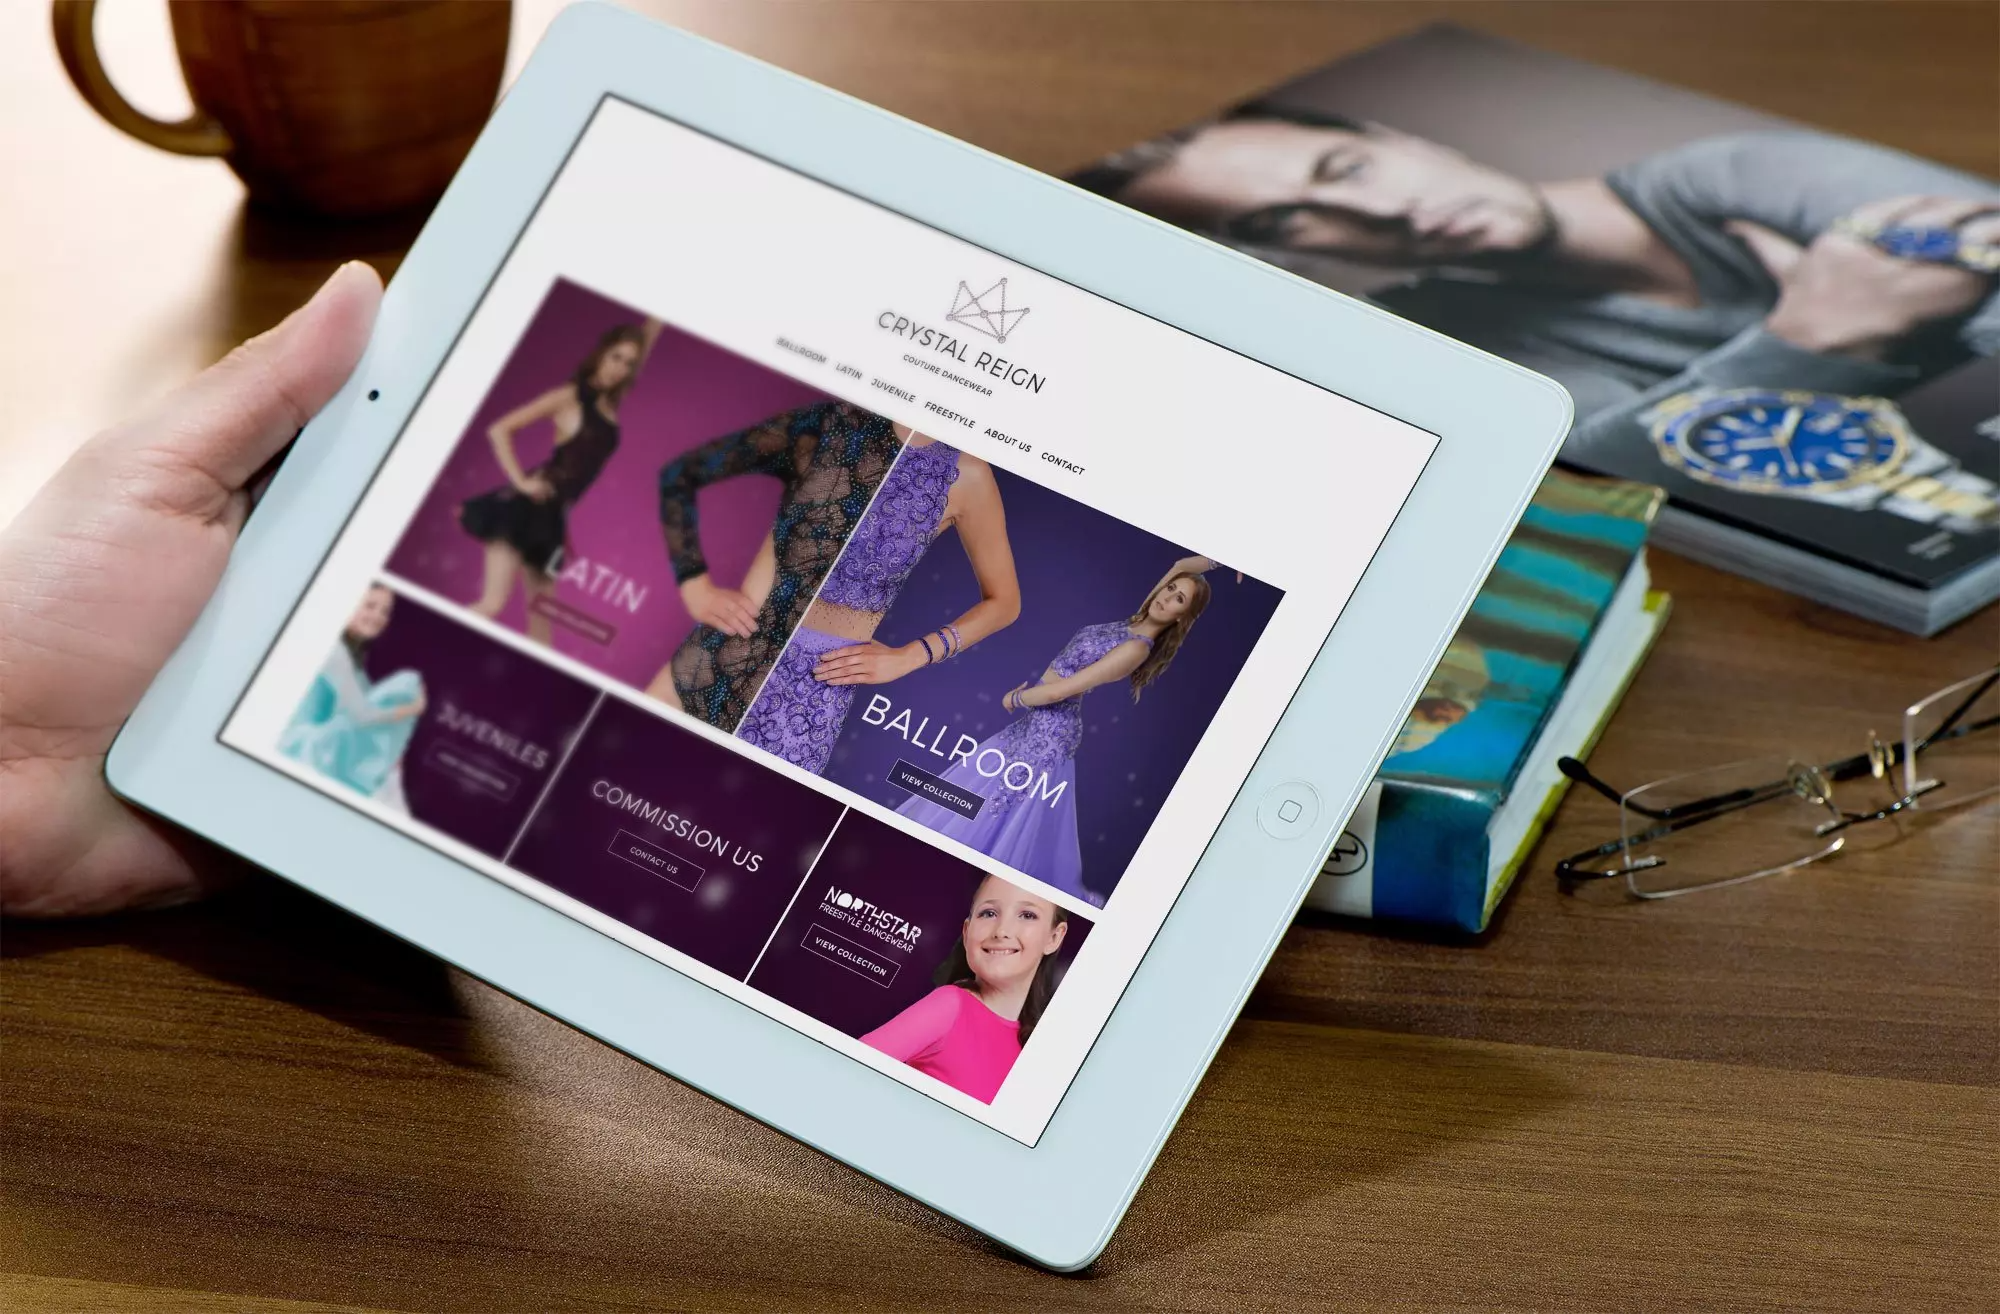 Crystal Reign Dancewear viewed on tablet device